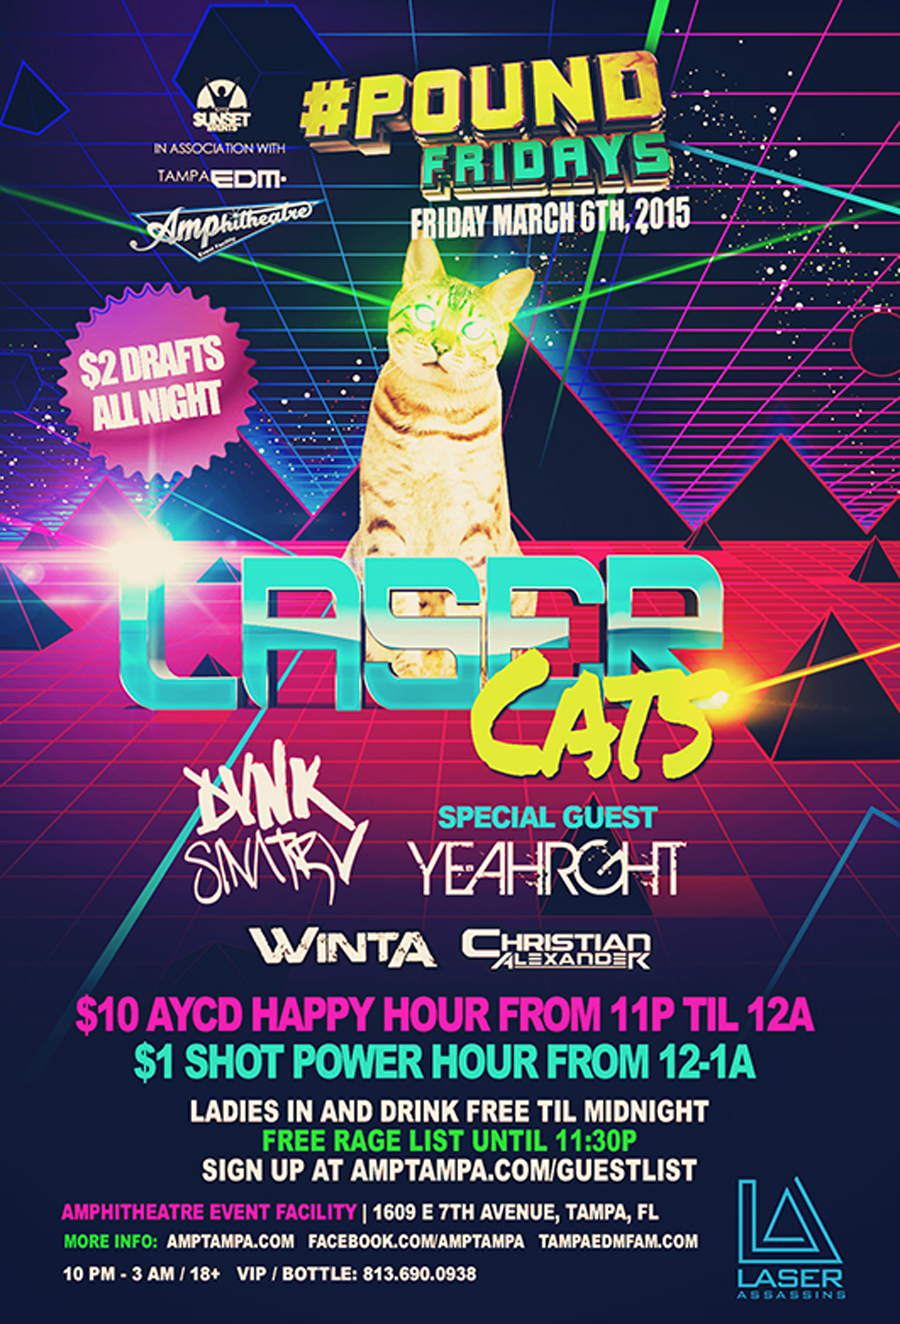 Laser Cats at #POUND Fridays with DVNK SINATRV